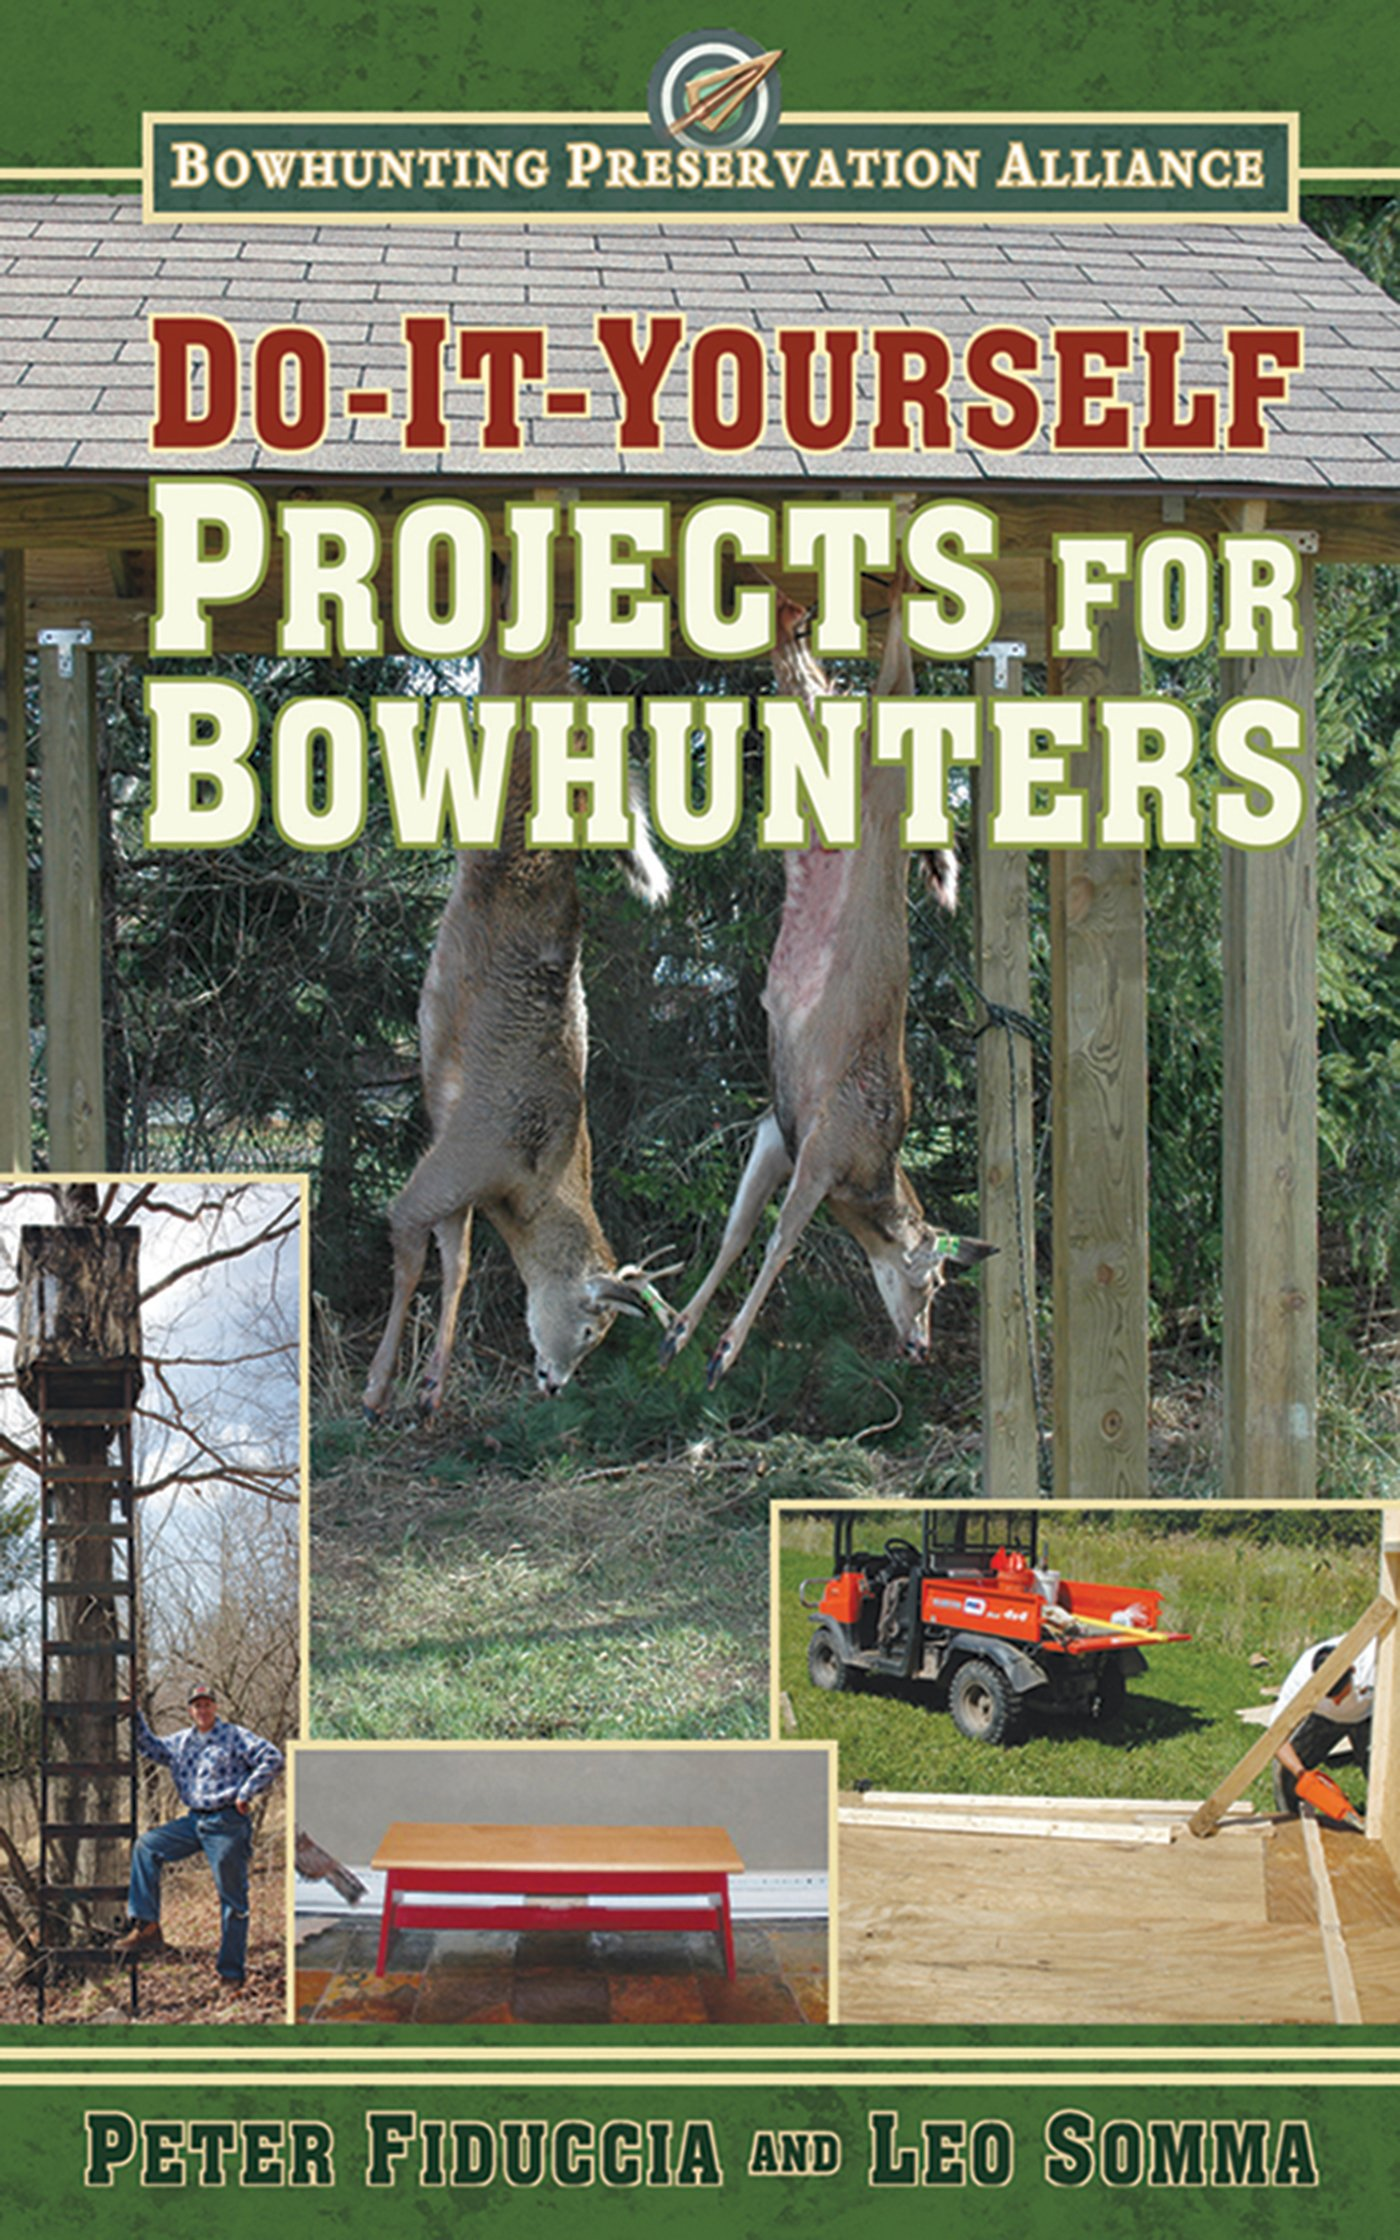 Do-It-Yourself Projects for Bowhunters (Bowhunting Preservation Alliance) ebook